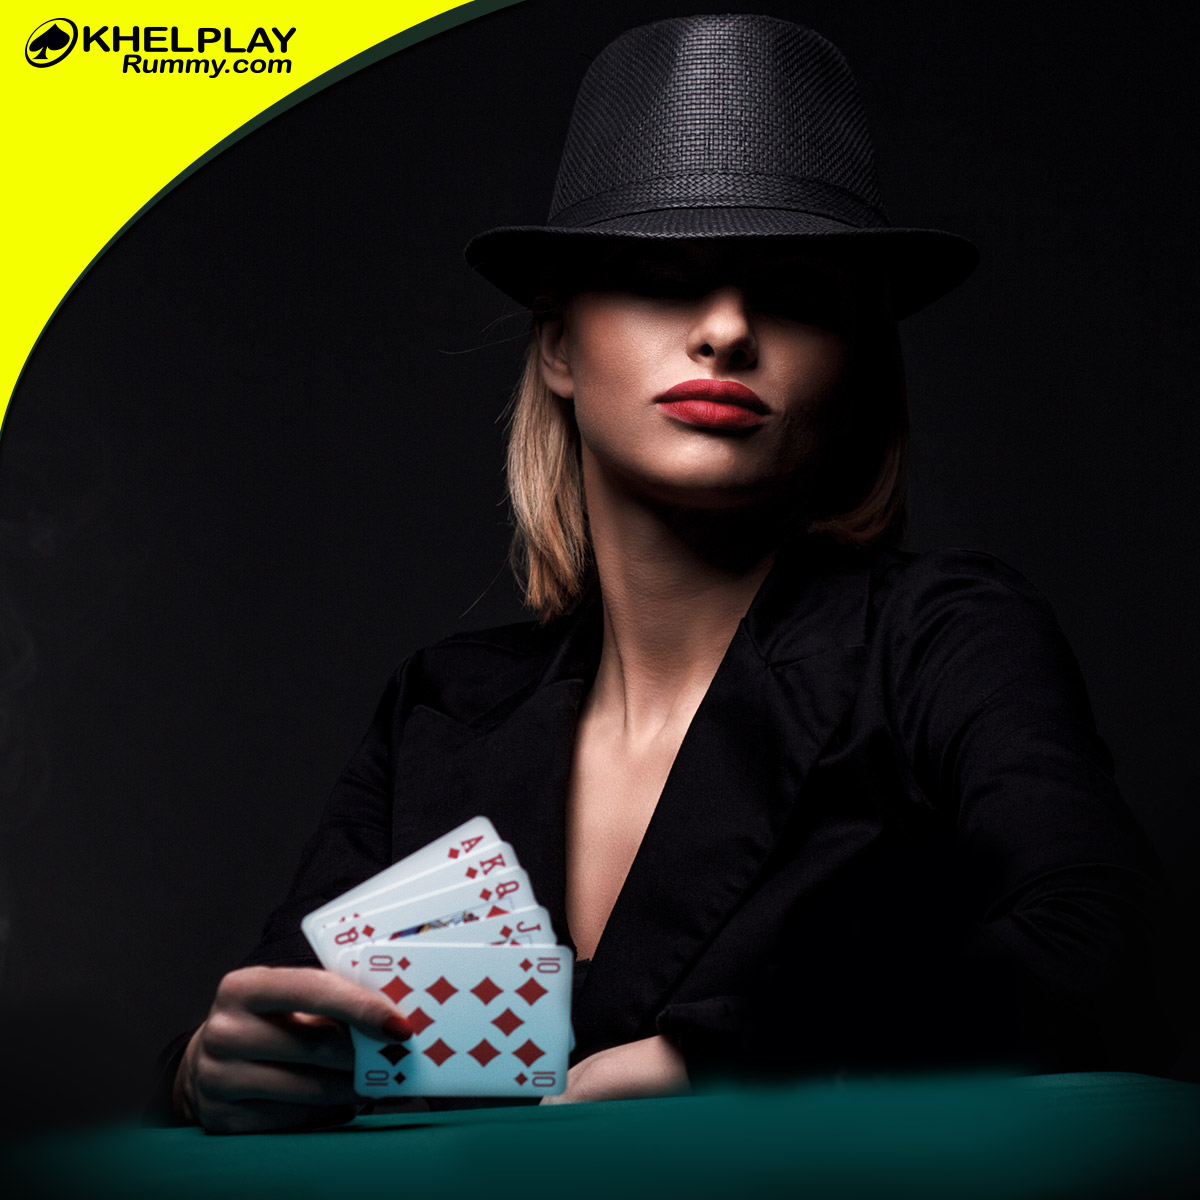 Simple Ways to Know How to Play Rummy on the Internet